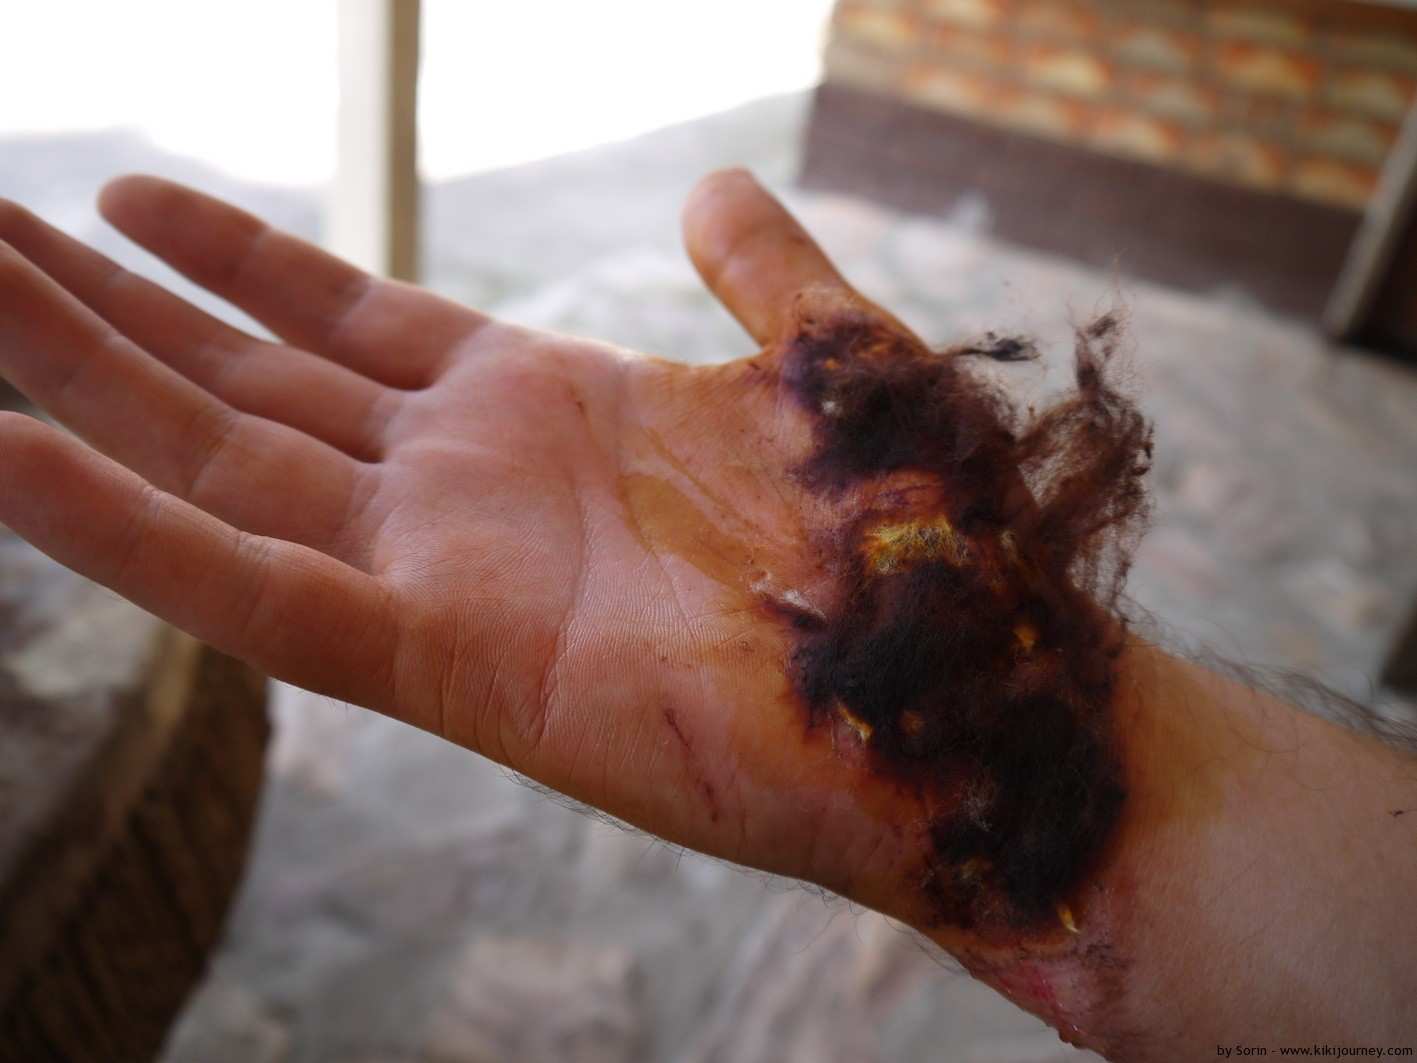 Pictures of Bad Wounds http://www.kikijourney.com/first-boda-boda-crash-and-last/